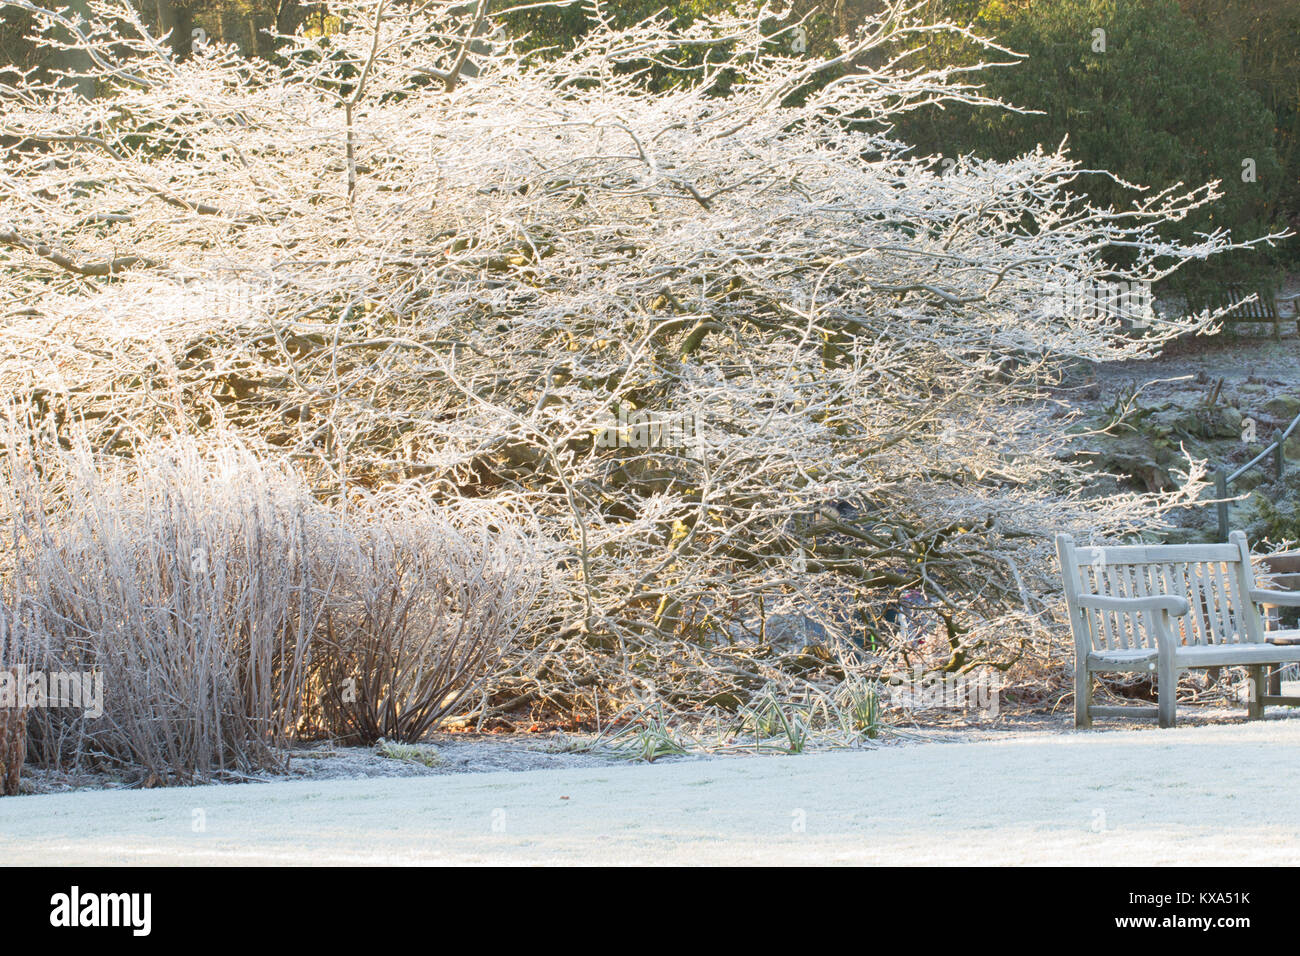 Winter Garden Uk Frost Stockfotos & Winter Garden Uk Frost Bilder ...